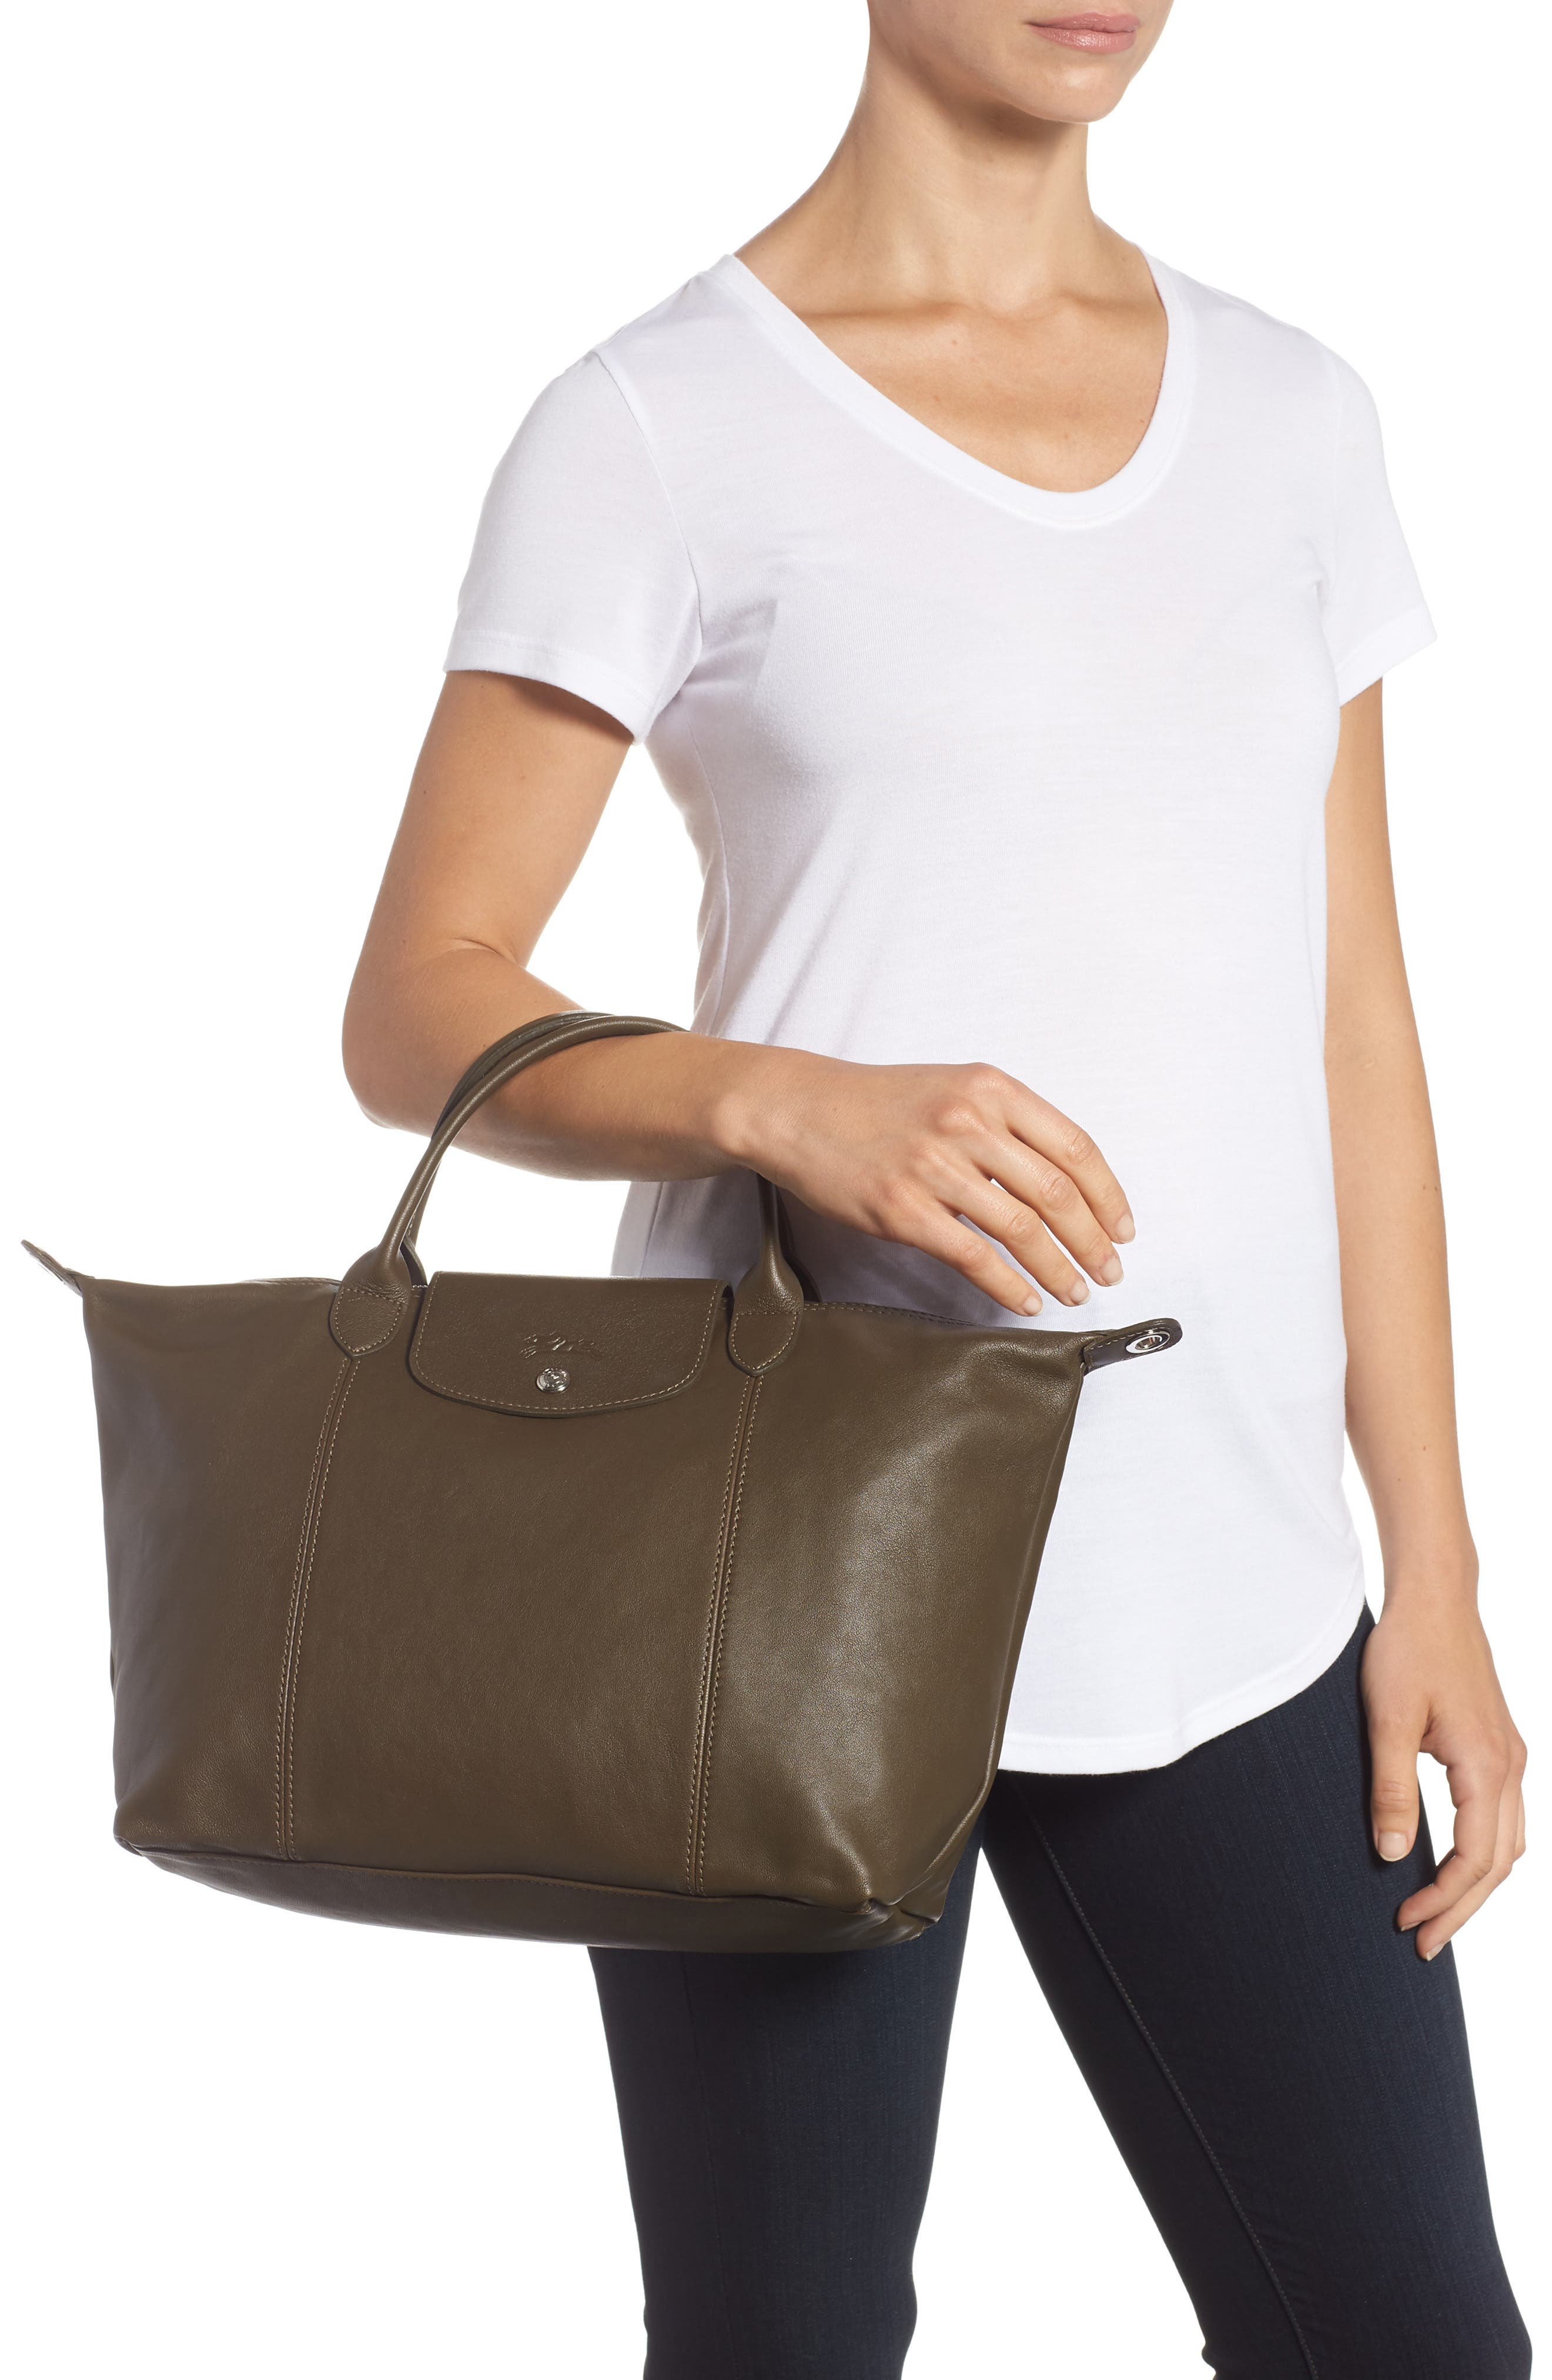 Medium 'Le Pliage Cuir' Leather Top Handle Tote,                             Alternate thumbnail 2, color,                             301